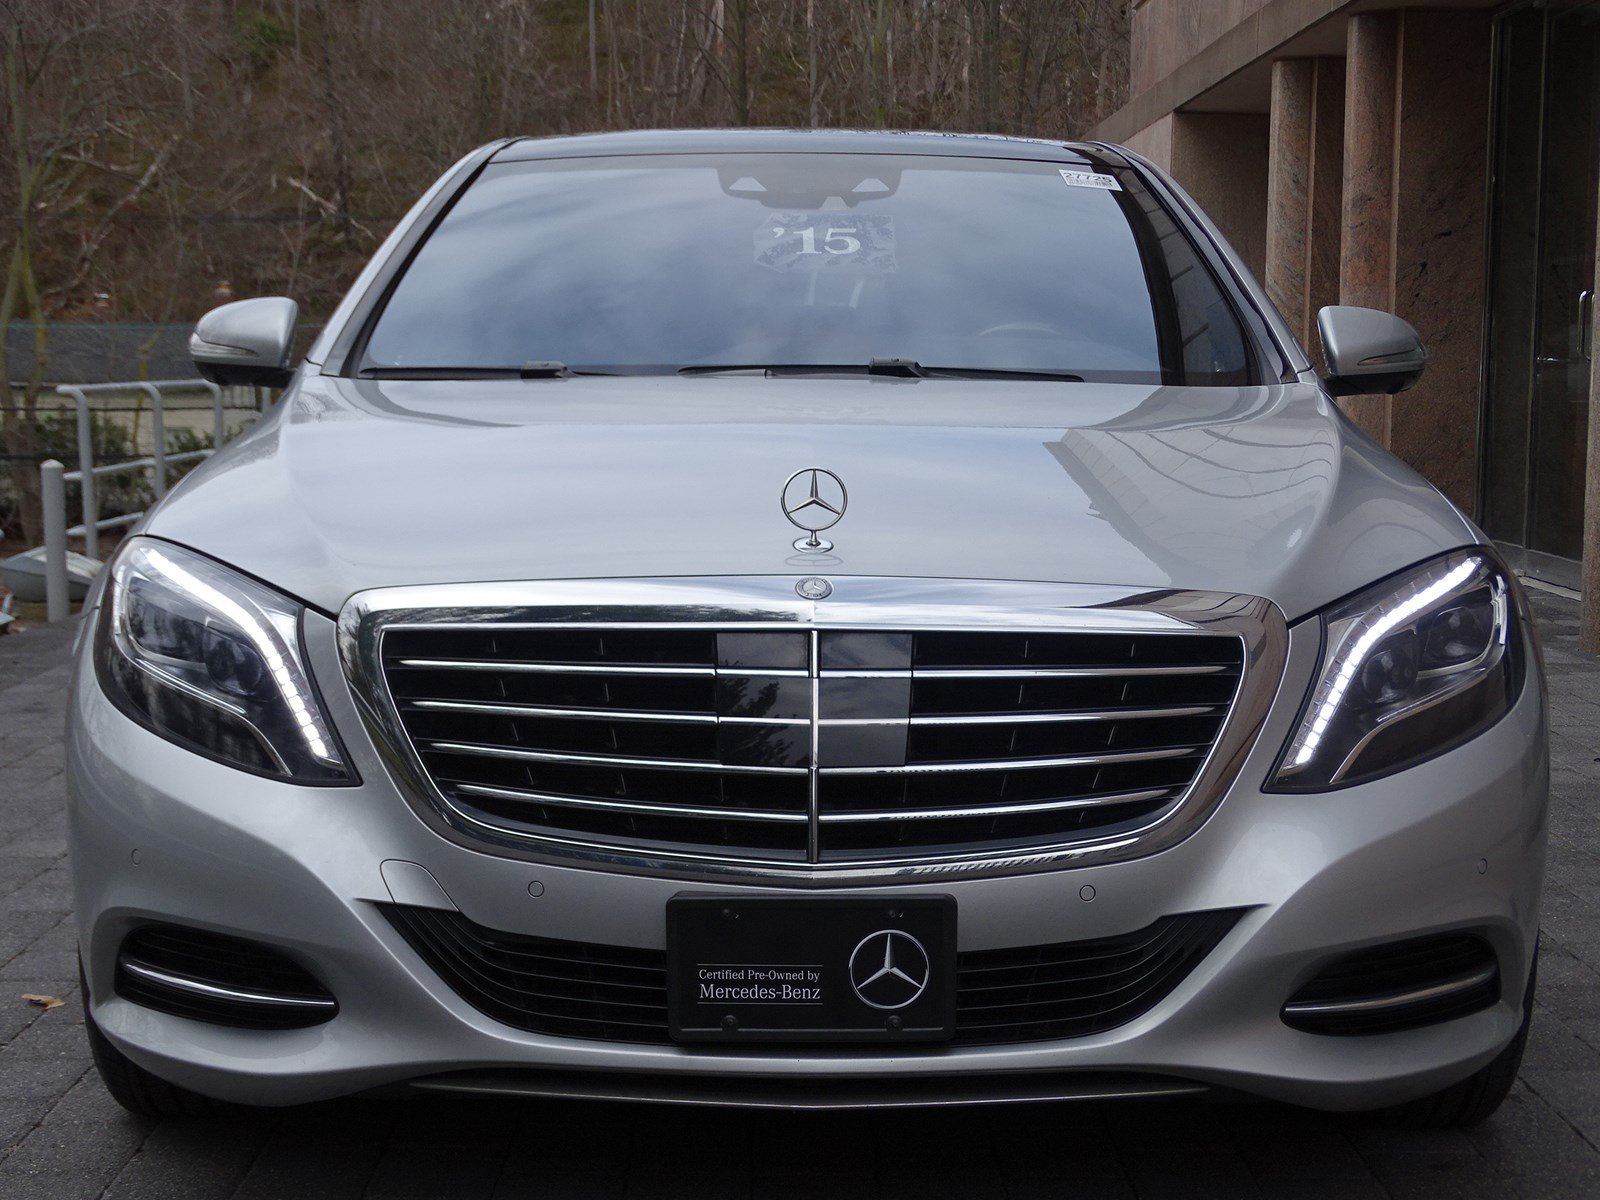 Certified pre owned 2015 mercedes benz s class s 550 sedan for Certified pre owned mercedes benz